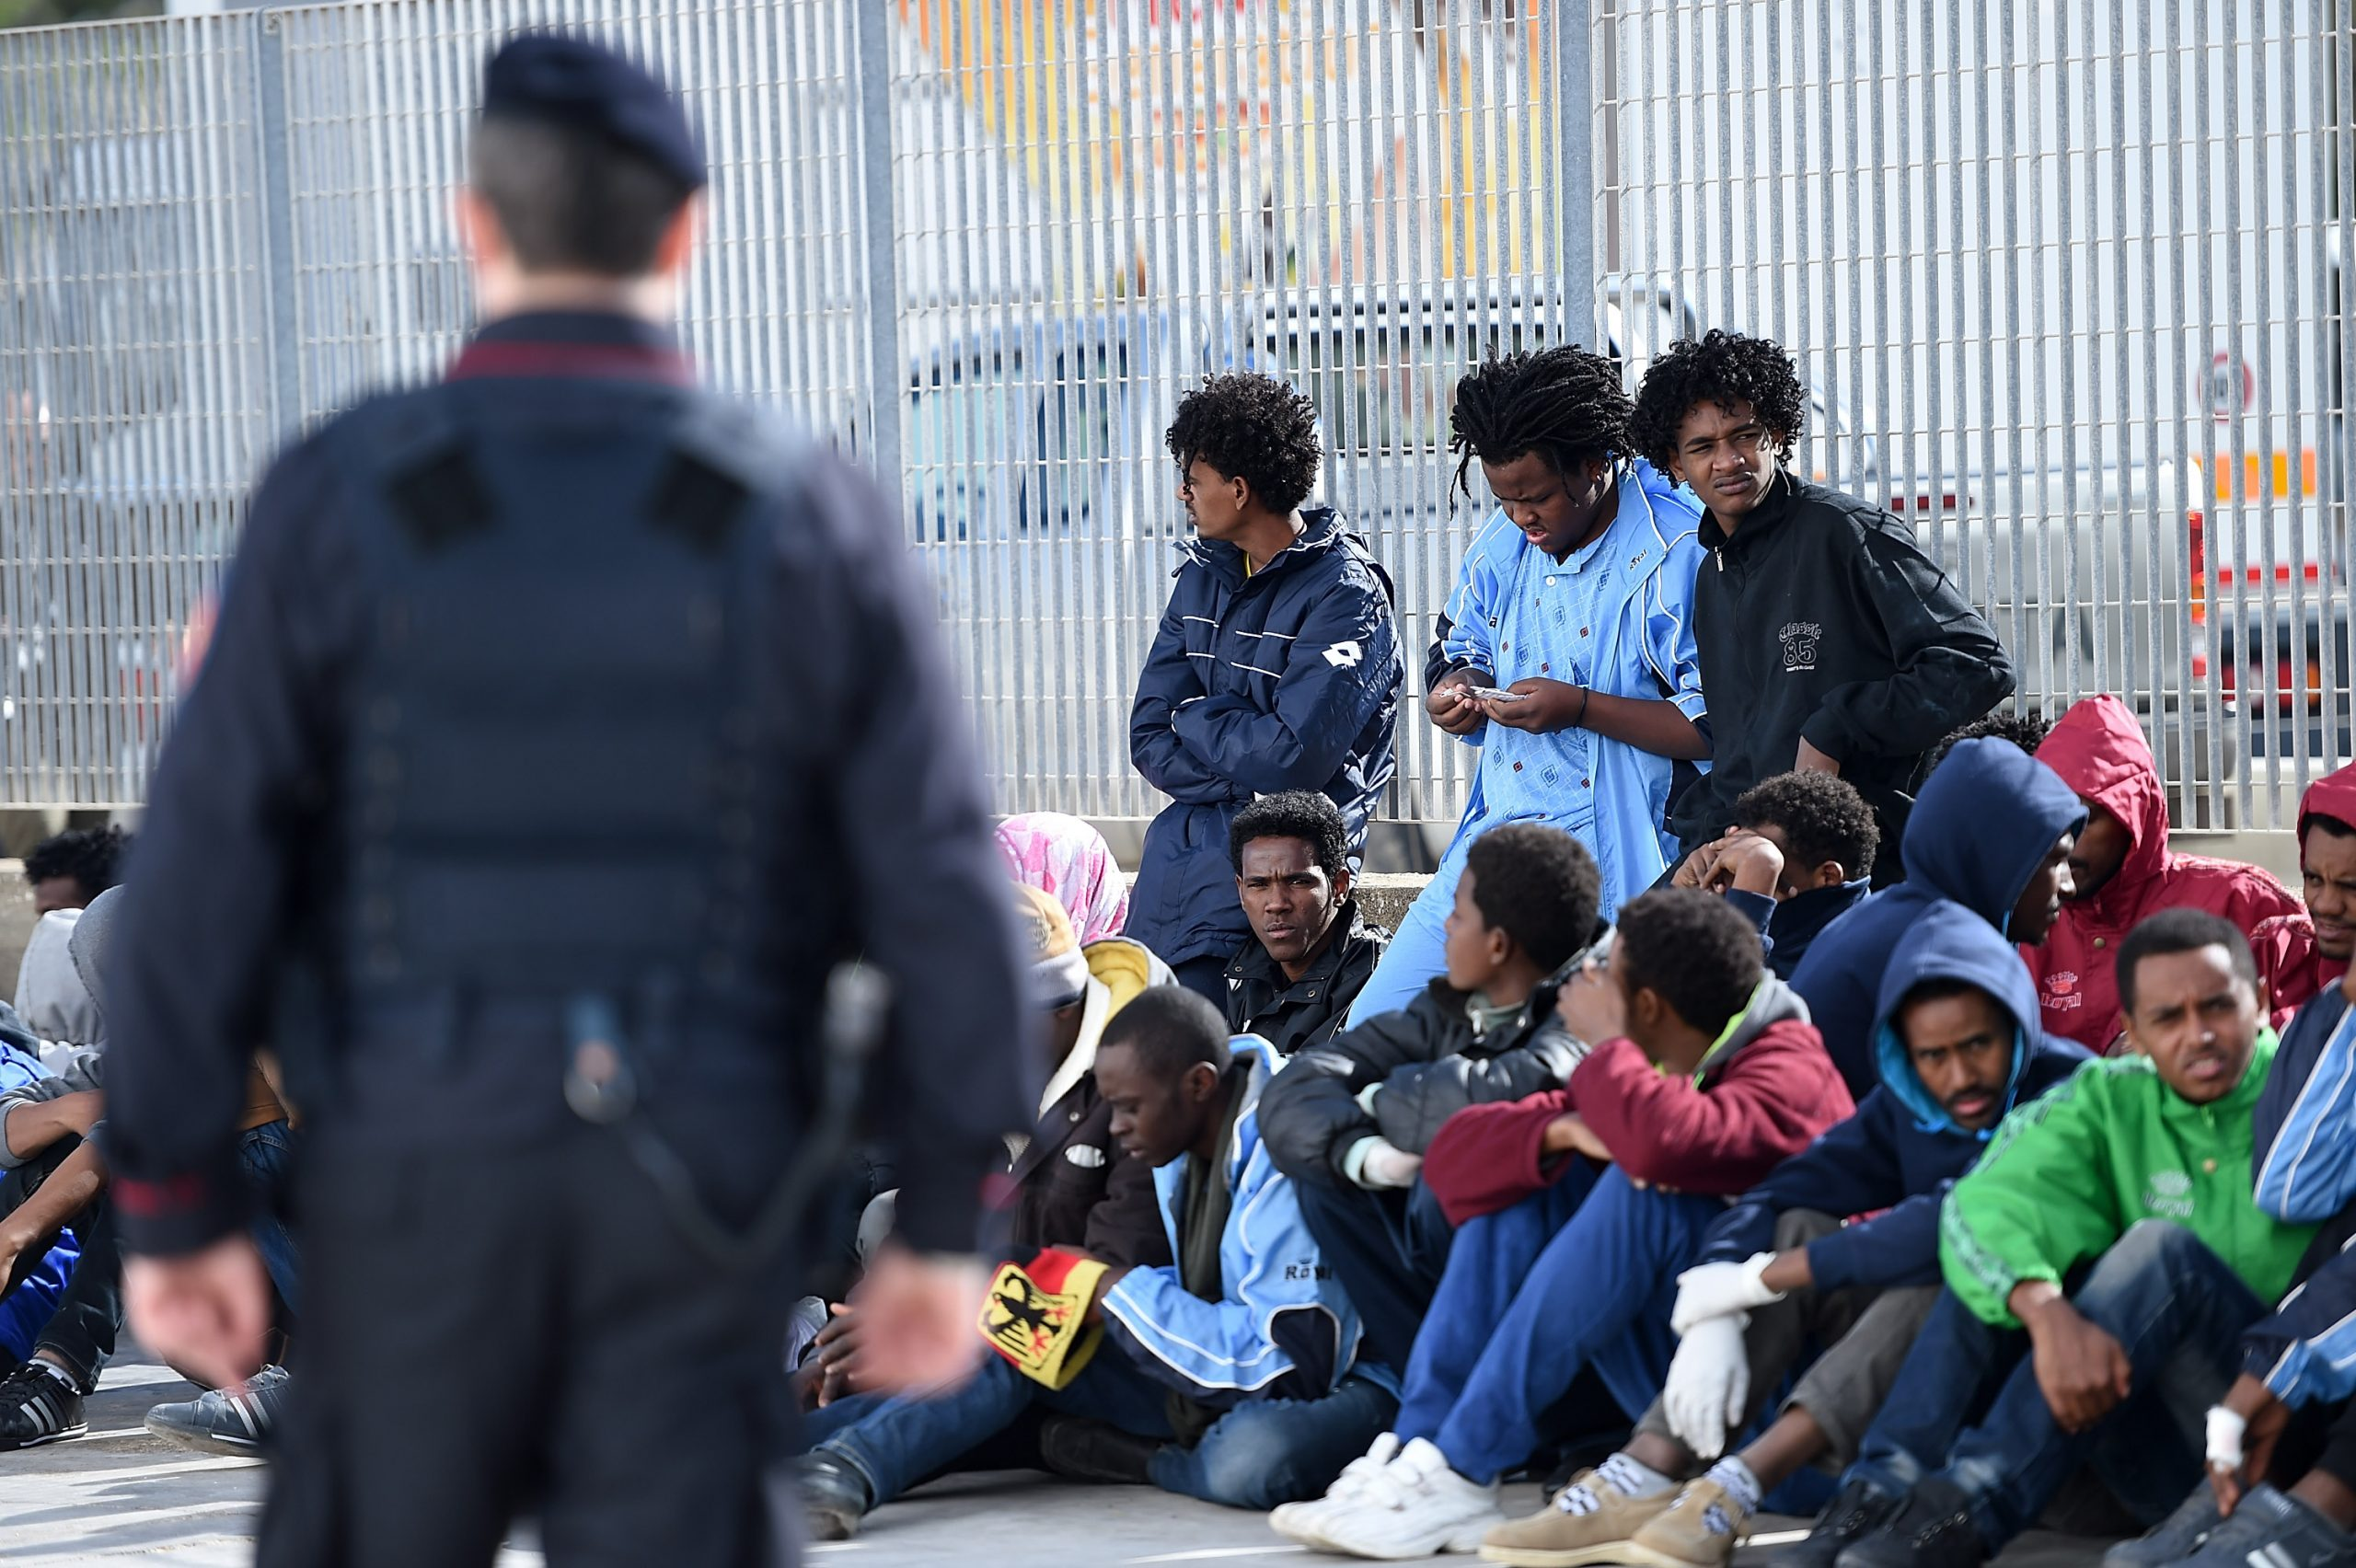 Immigrants wait to board a ship on February 18, 2015 in Lampedusa, Italy. Hundreds of migrants have recently arrived in Lampedusa. (Photo by Tullio M. Puglia/Getty Images)